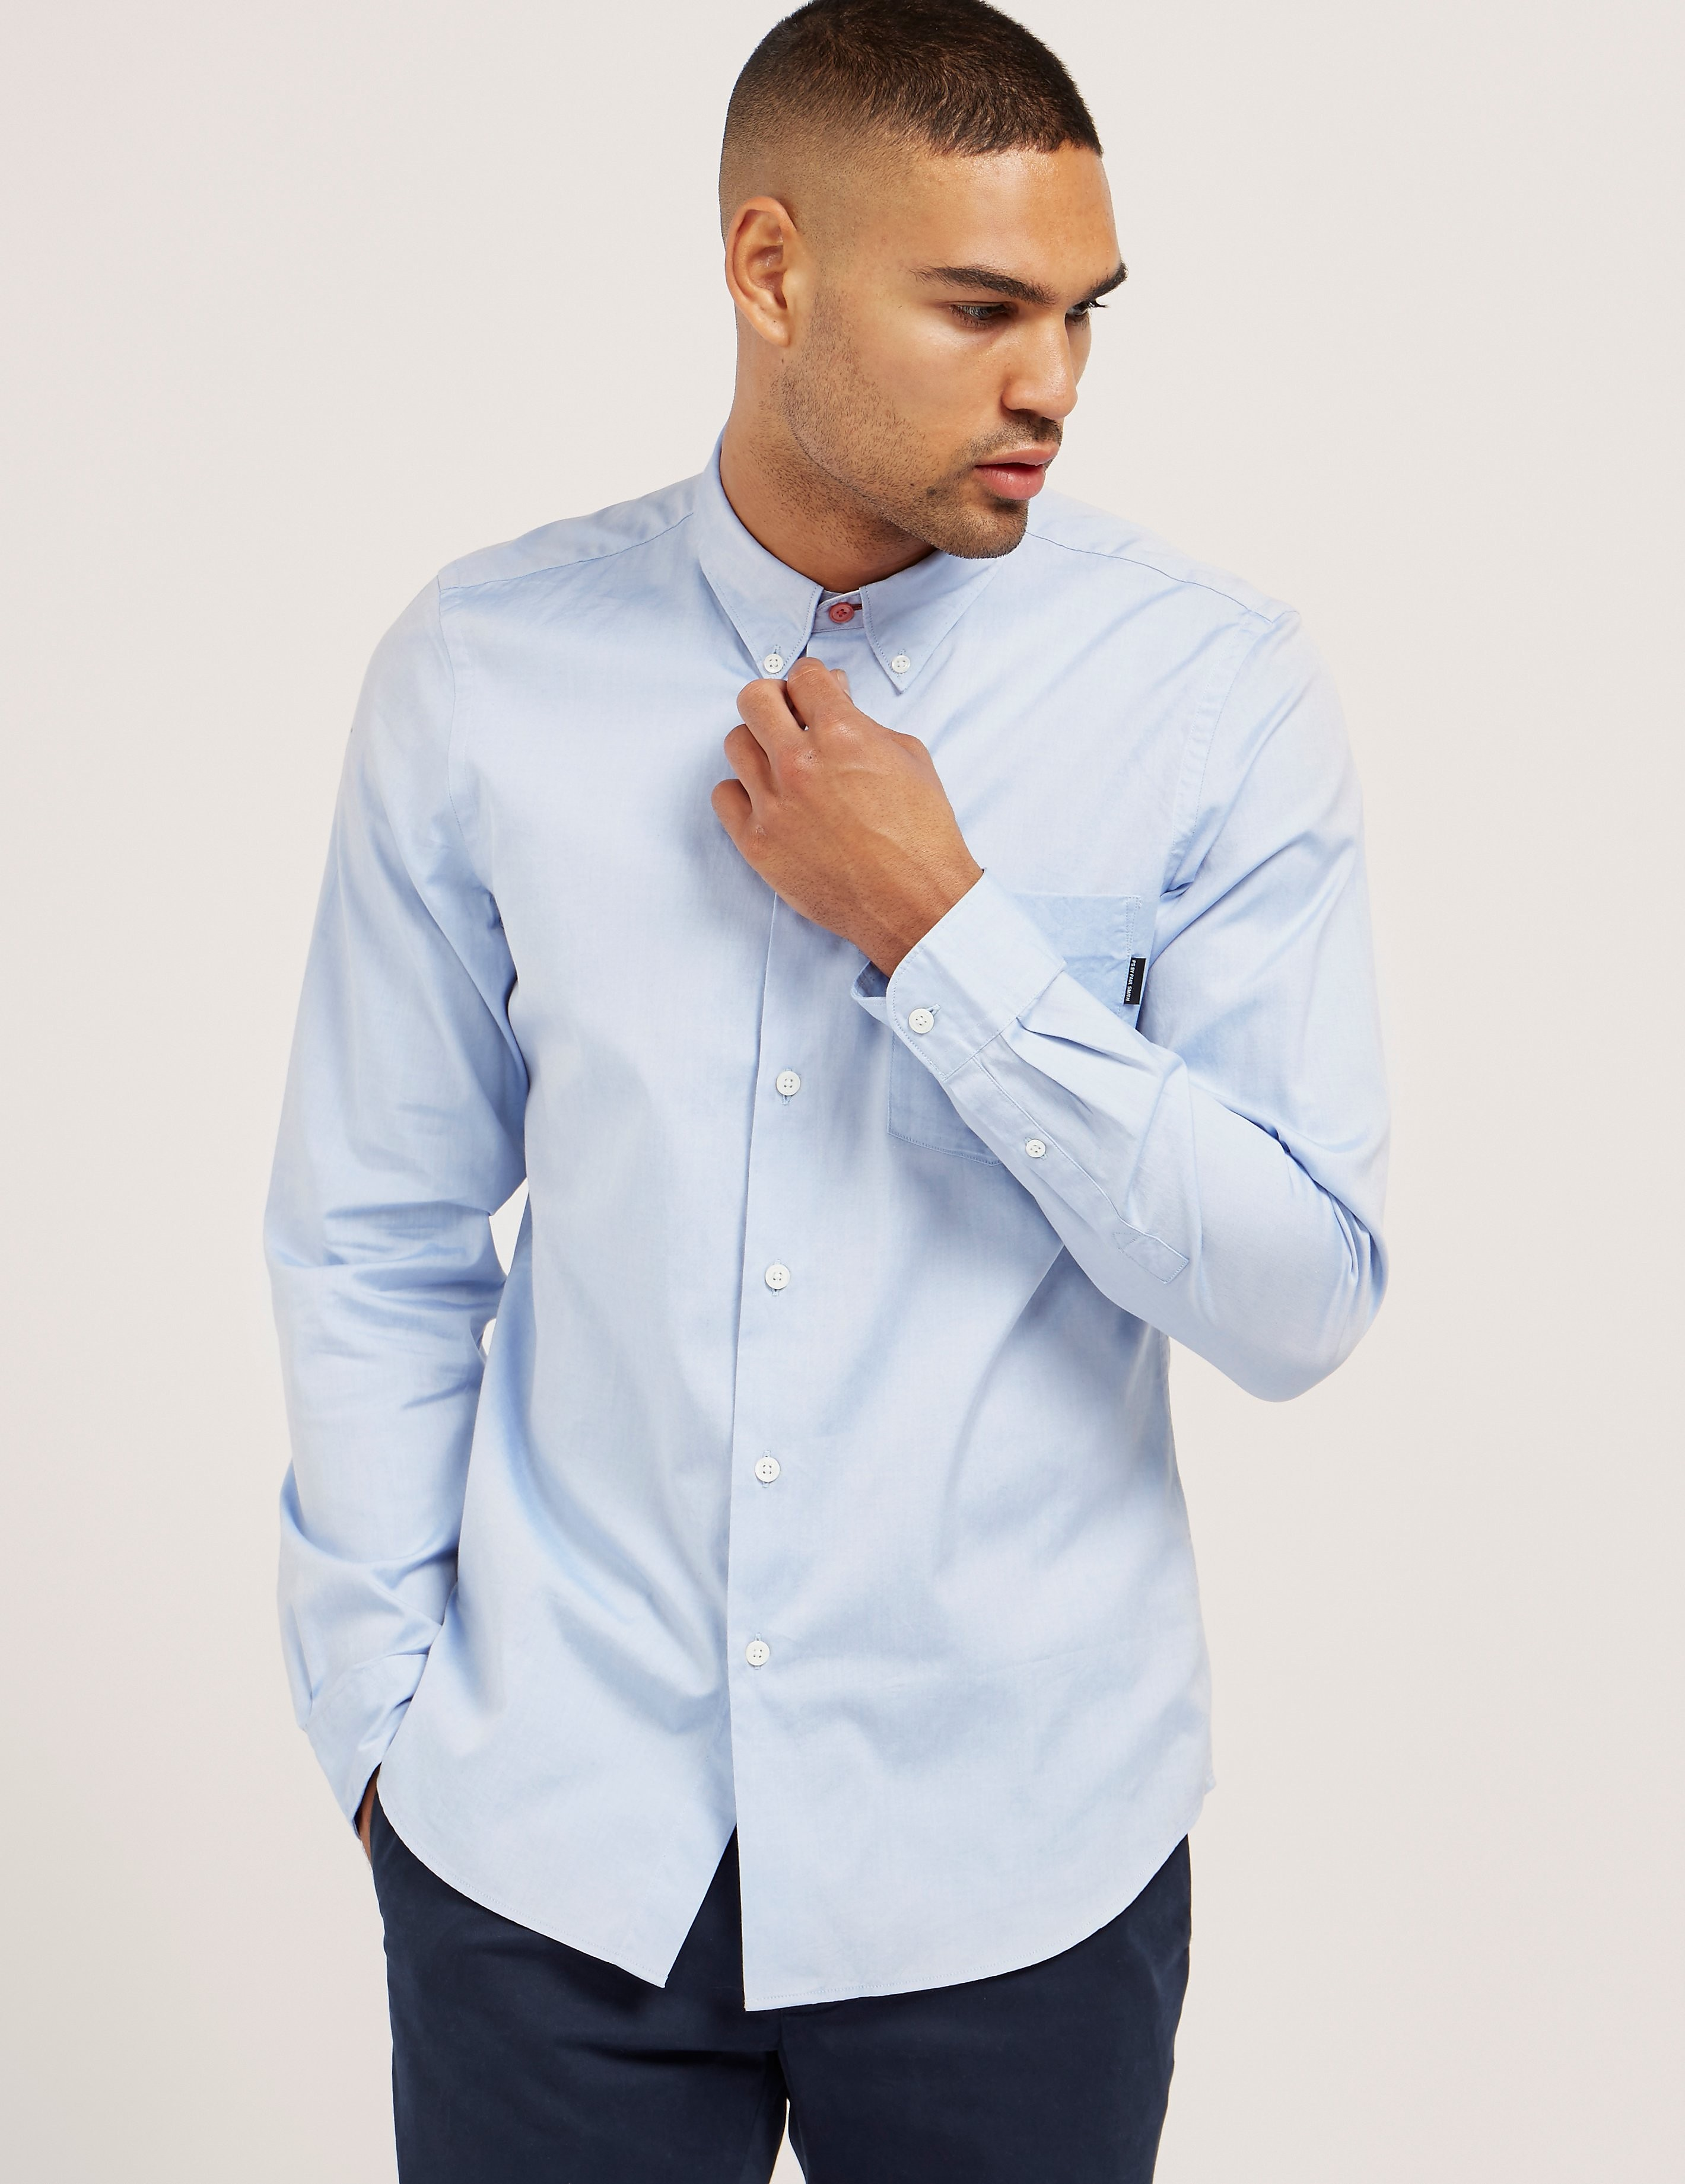 Paul Smith Oxford Long Sleeve Shirt